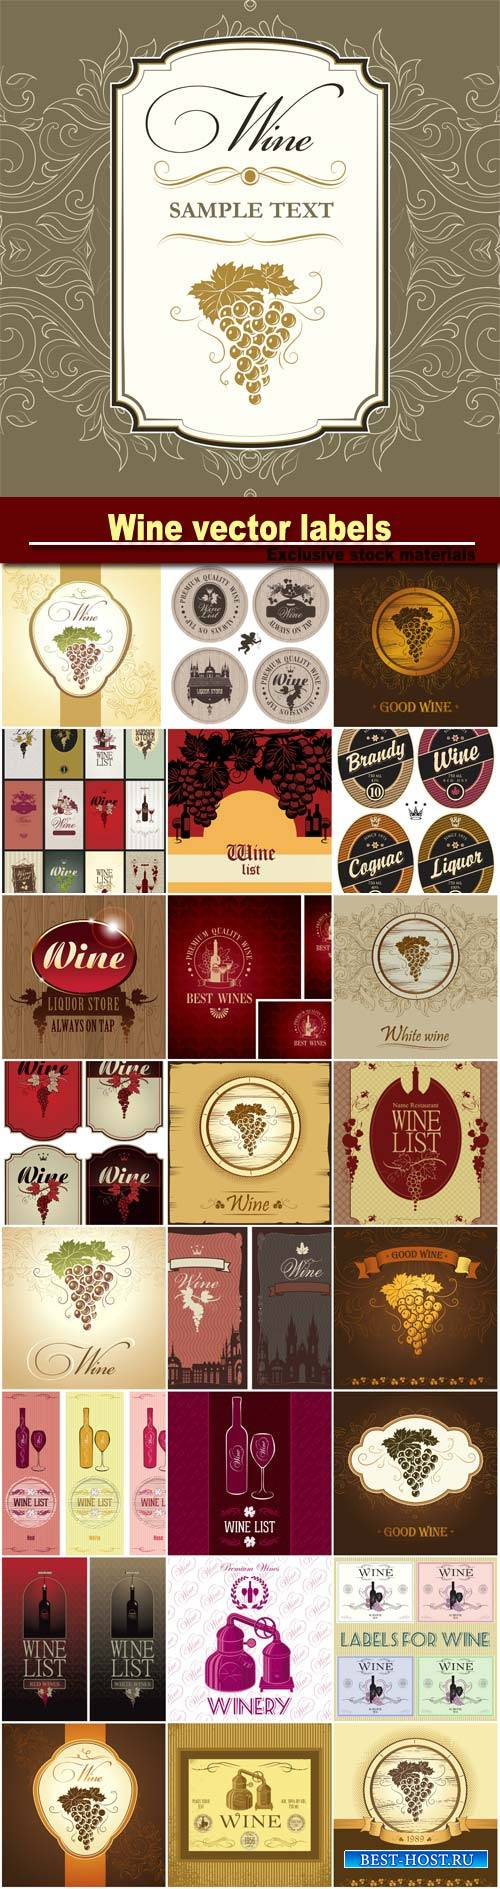 Wine vector labels, menu